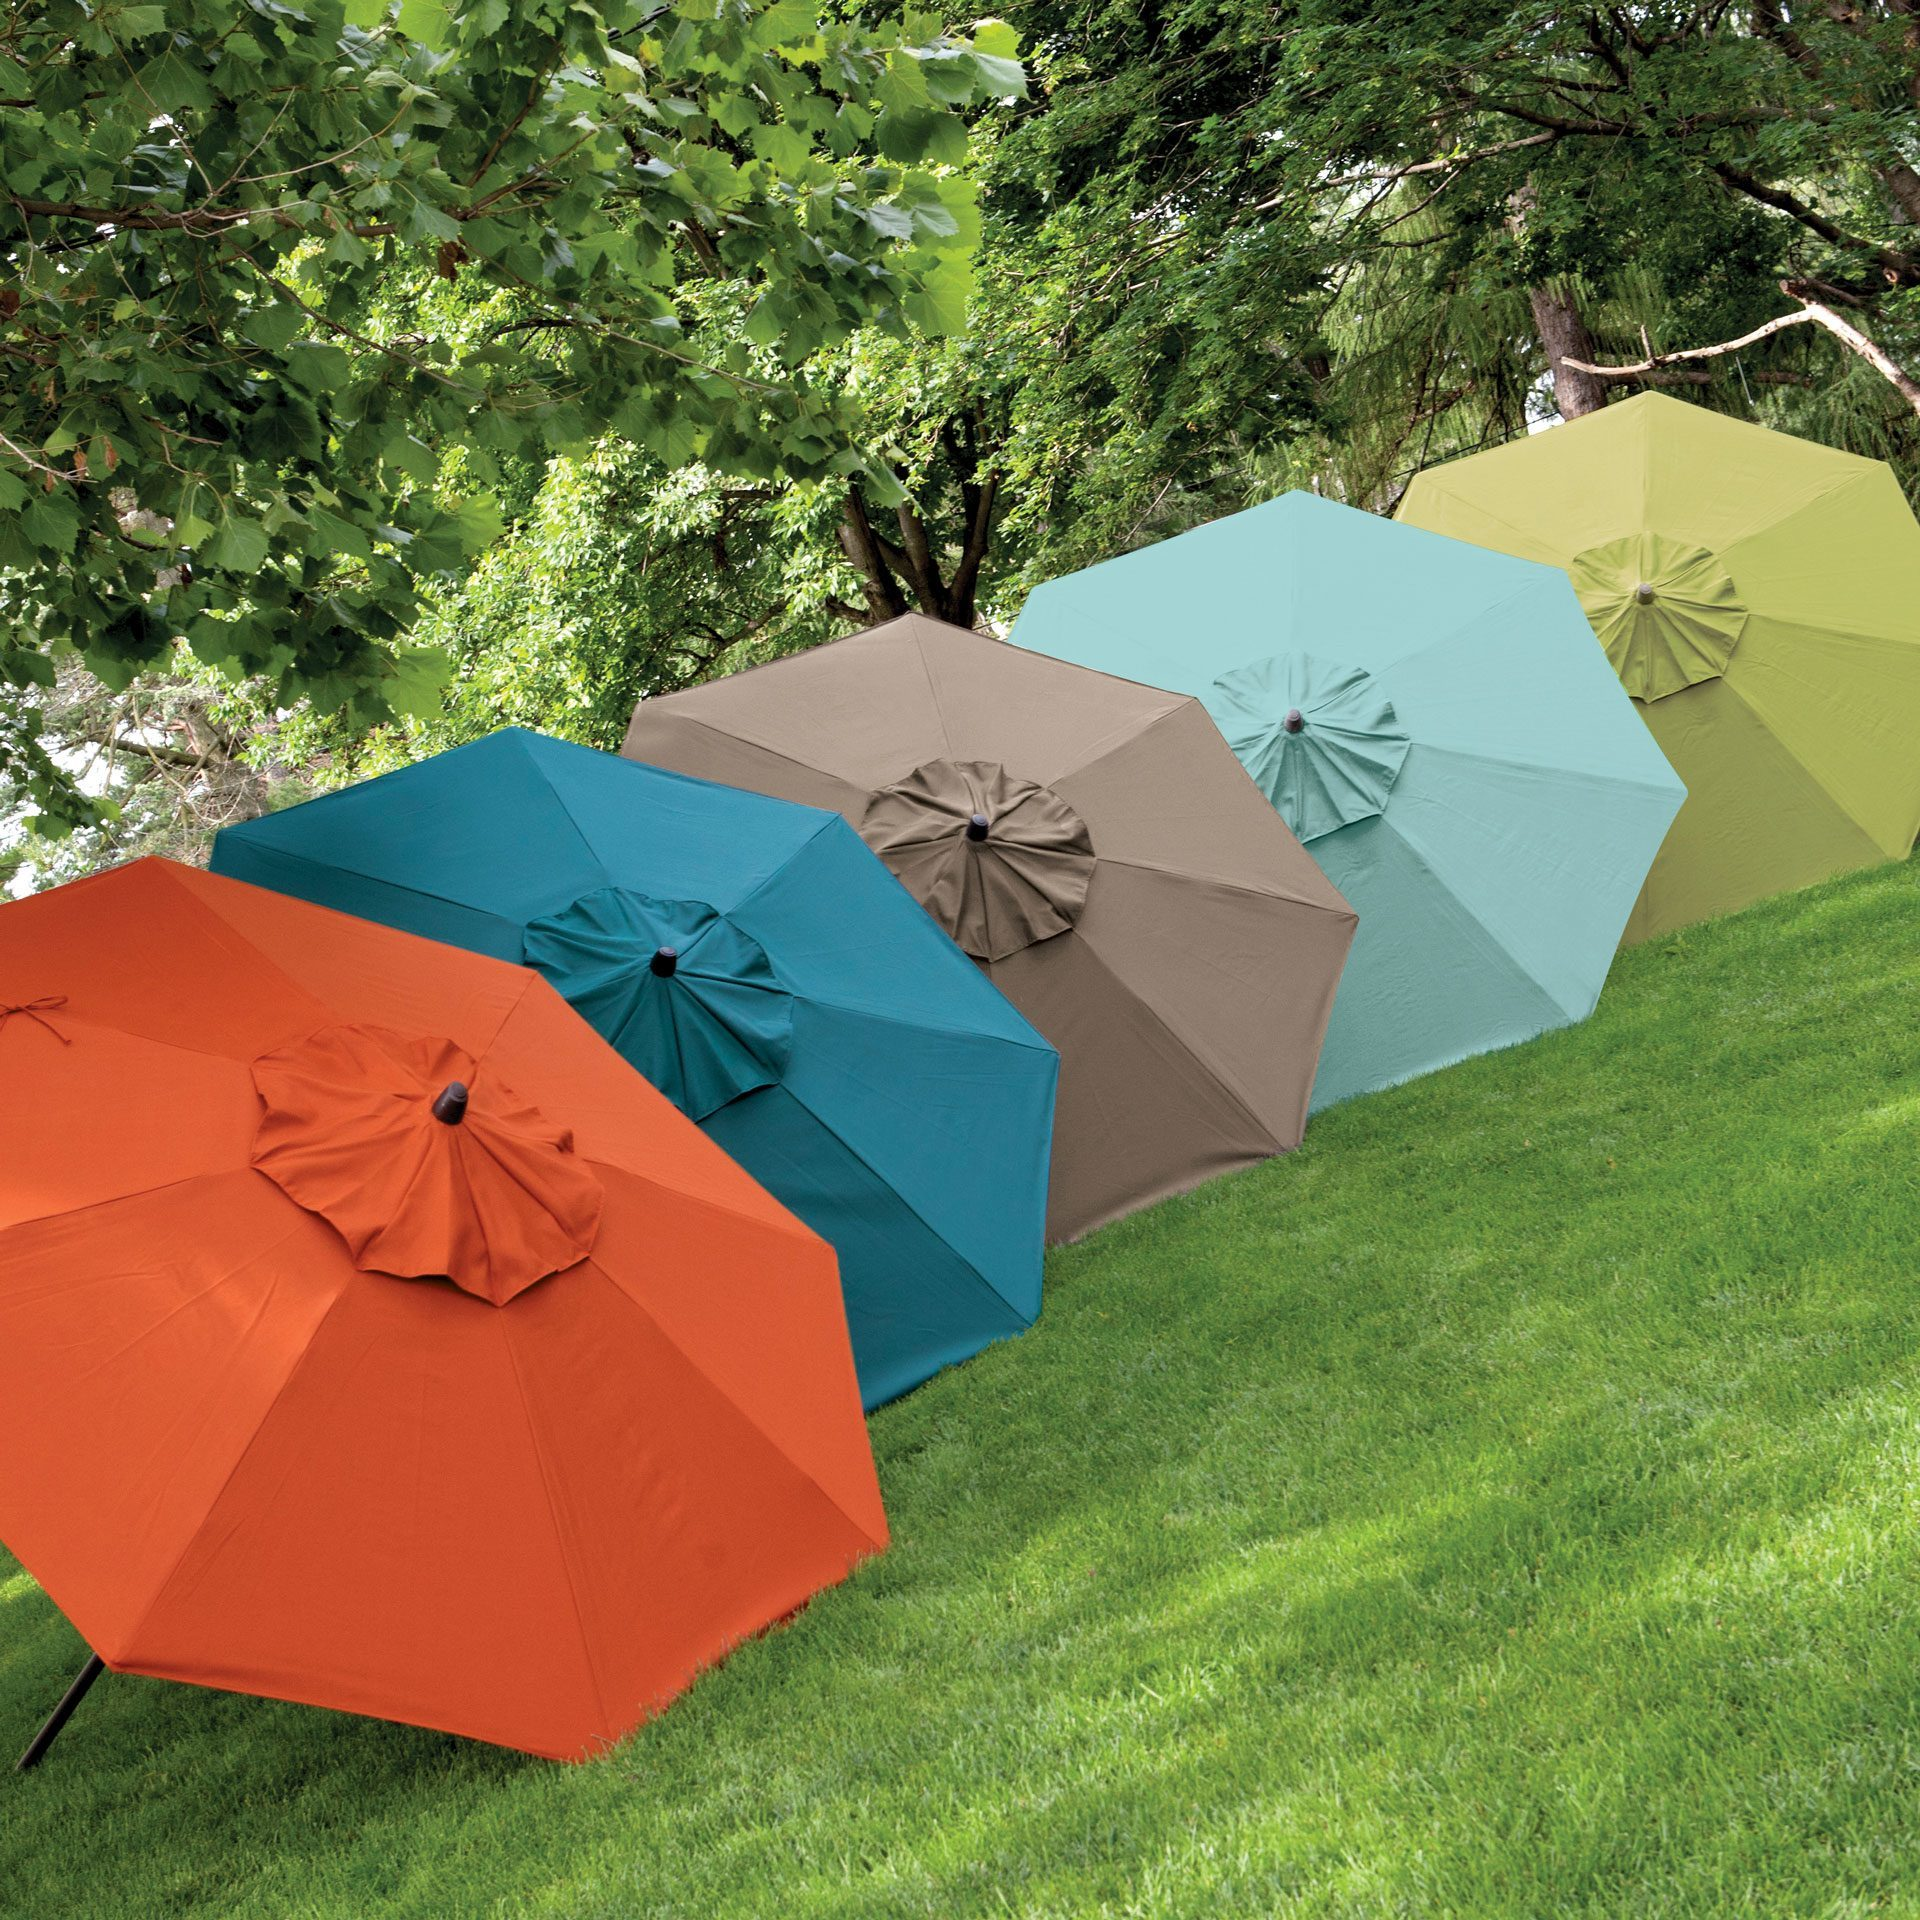 treasure garden umbrellas OFUEHLG